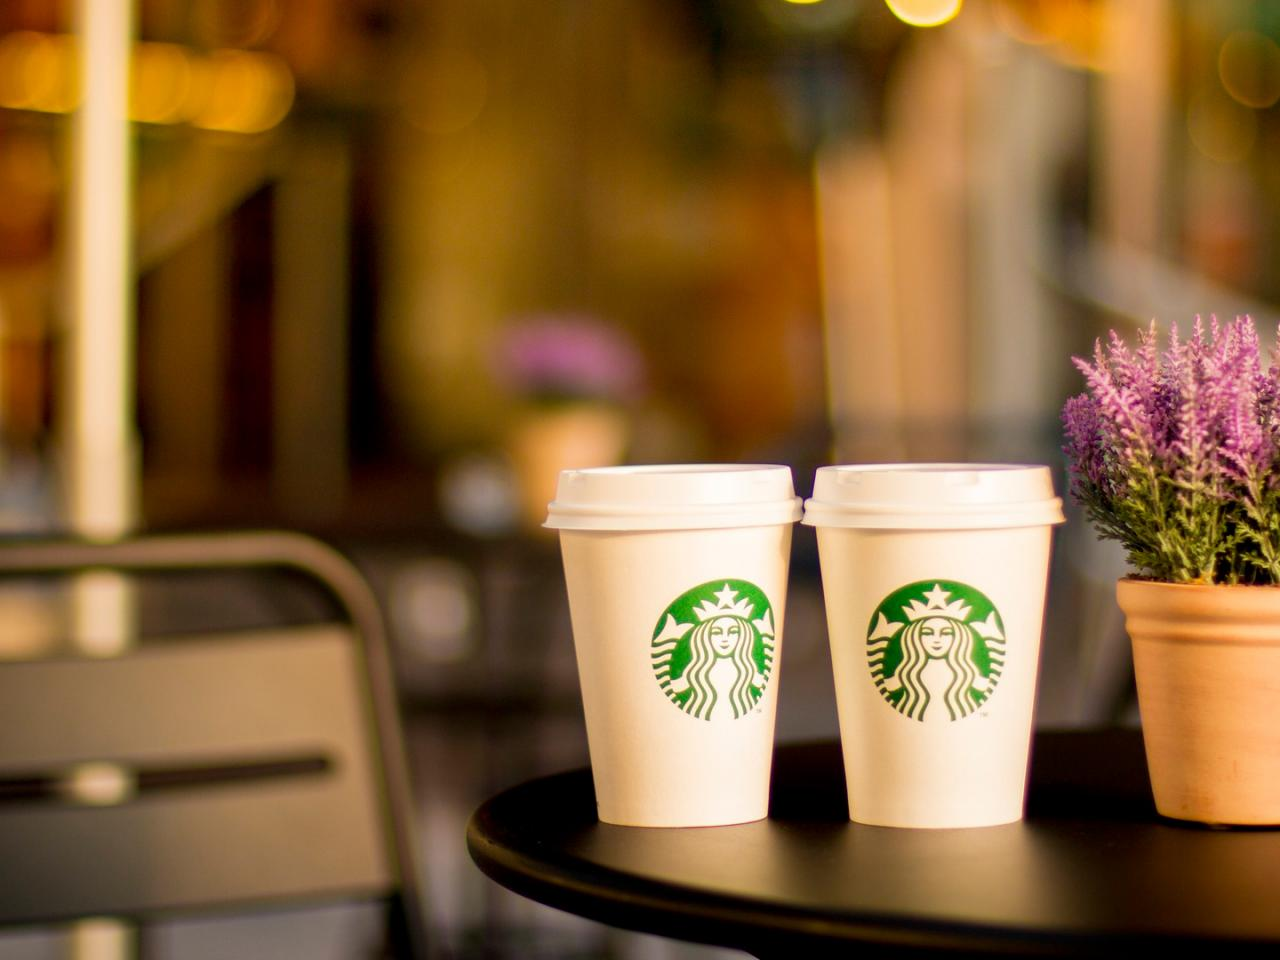 Cute Hd Wallpapers 1080p Widescreen Starbucks Pictures In Hd With Two Cups On Table Hd